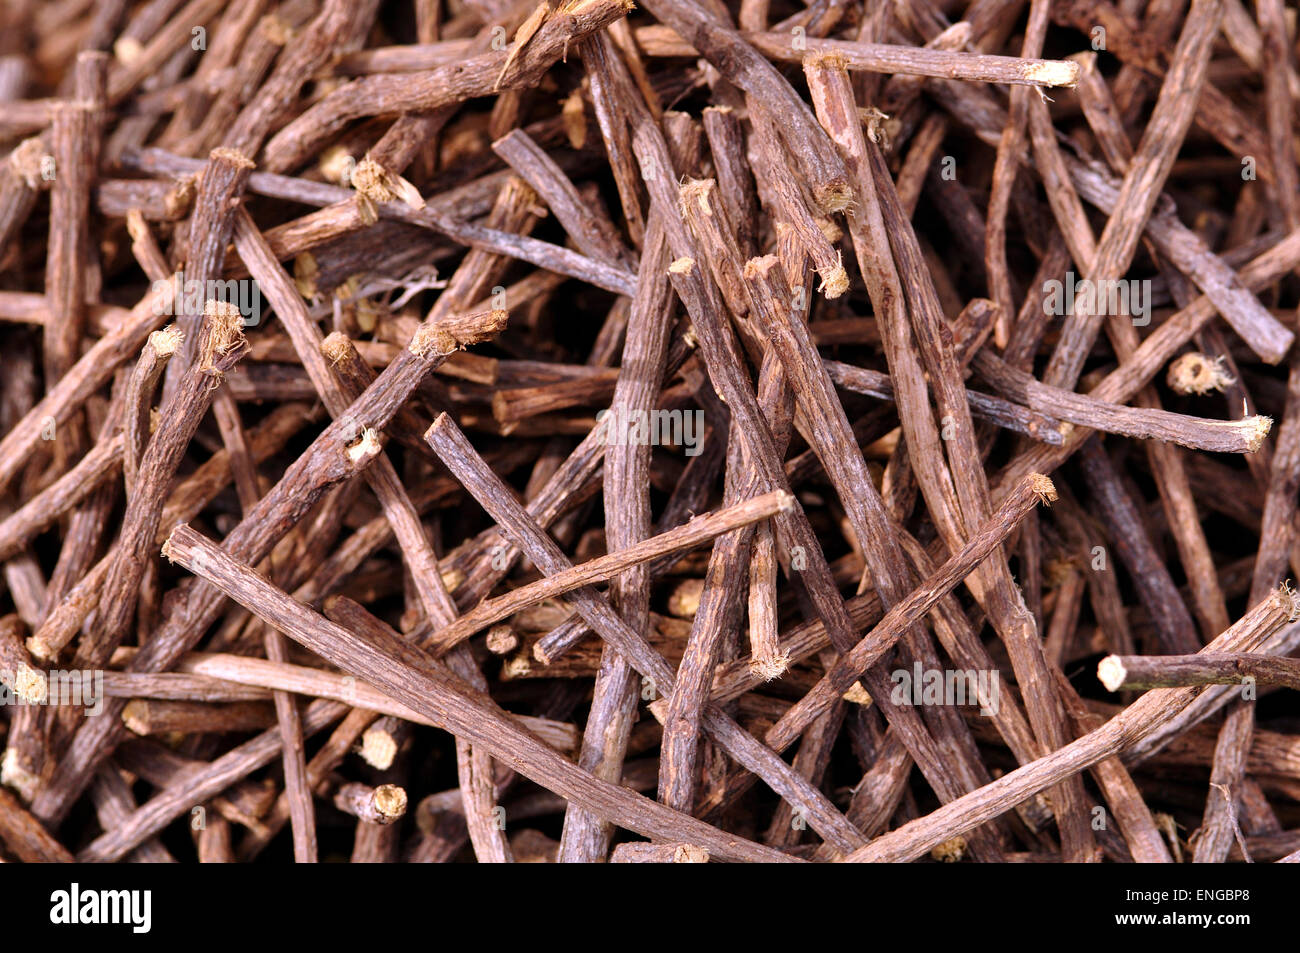 Licorice roots - Stock Image